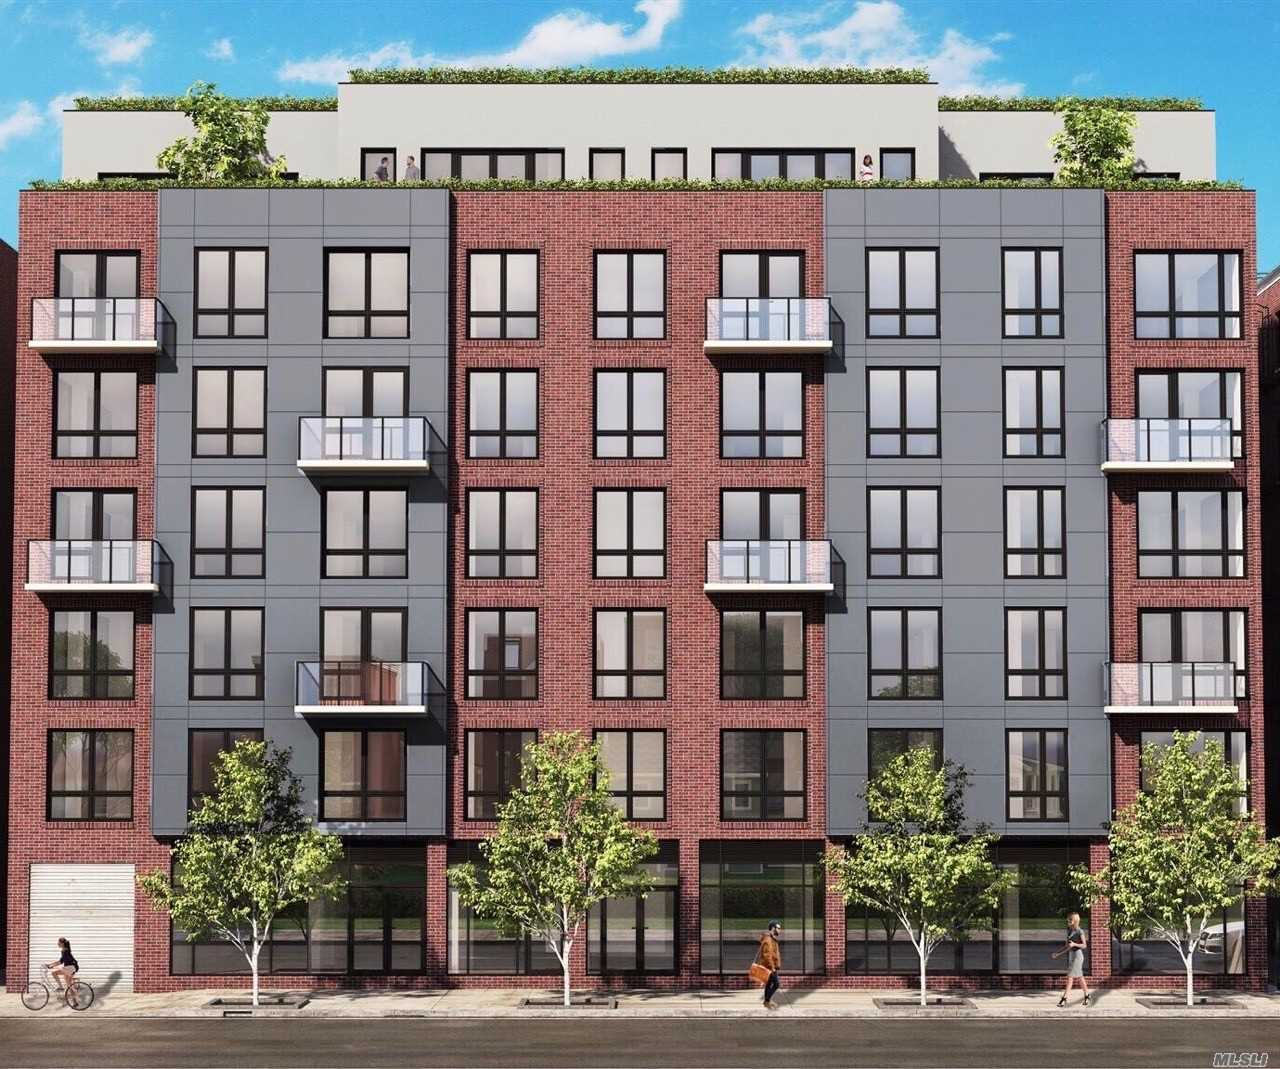 Beautiful 1 bed, South-East facing unit. Great view with plenty of sunlight. Hardwood floors throughout, In unit washer/dryer and large kitchen great for entertaining. Close to transportation, shopping and entertainment. Nestled in the heart of Historic Forest Hills this unit has much to offer!